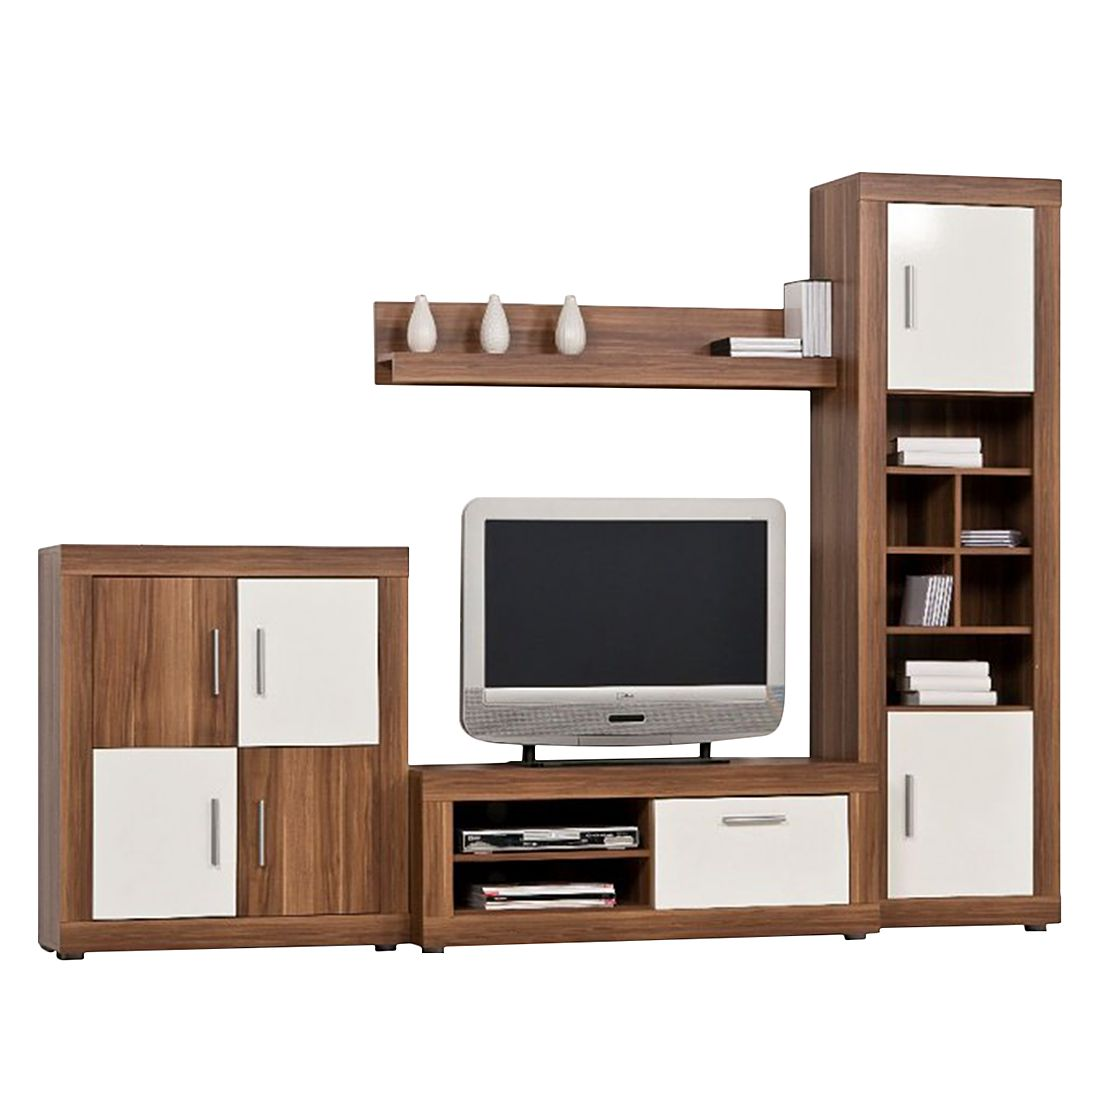 wohnwand echtholz nussbaum neuesten design kollektionen f r die familien. Black Bedroom Furniture Sets. Home Design Ideas